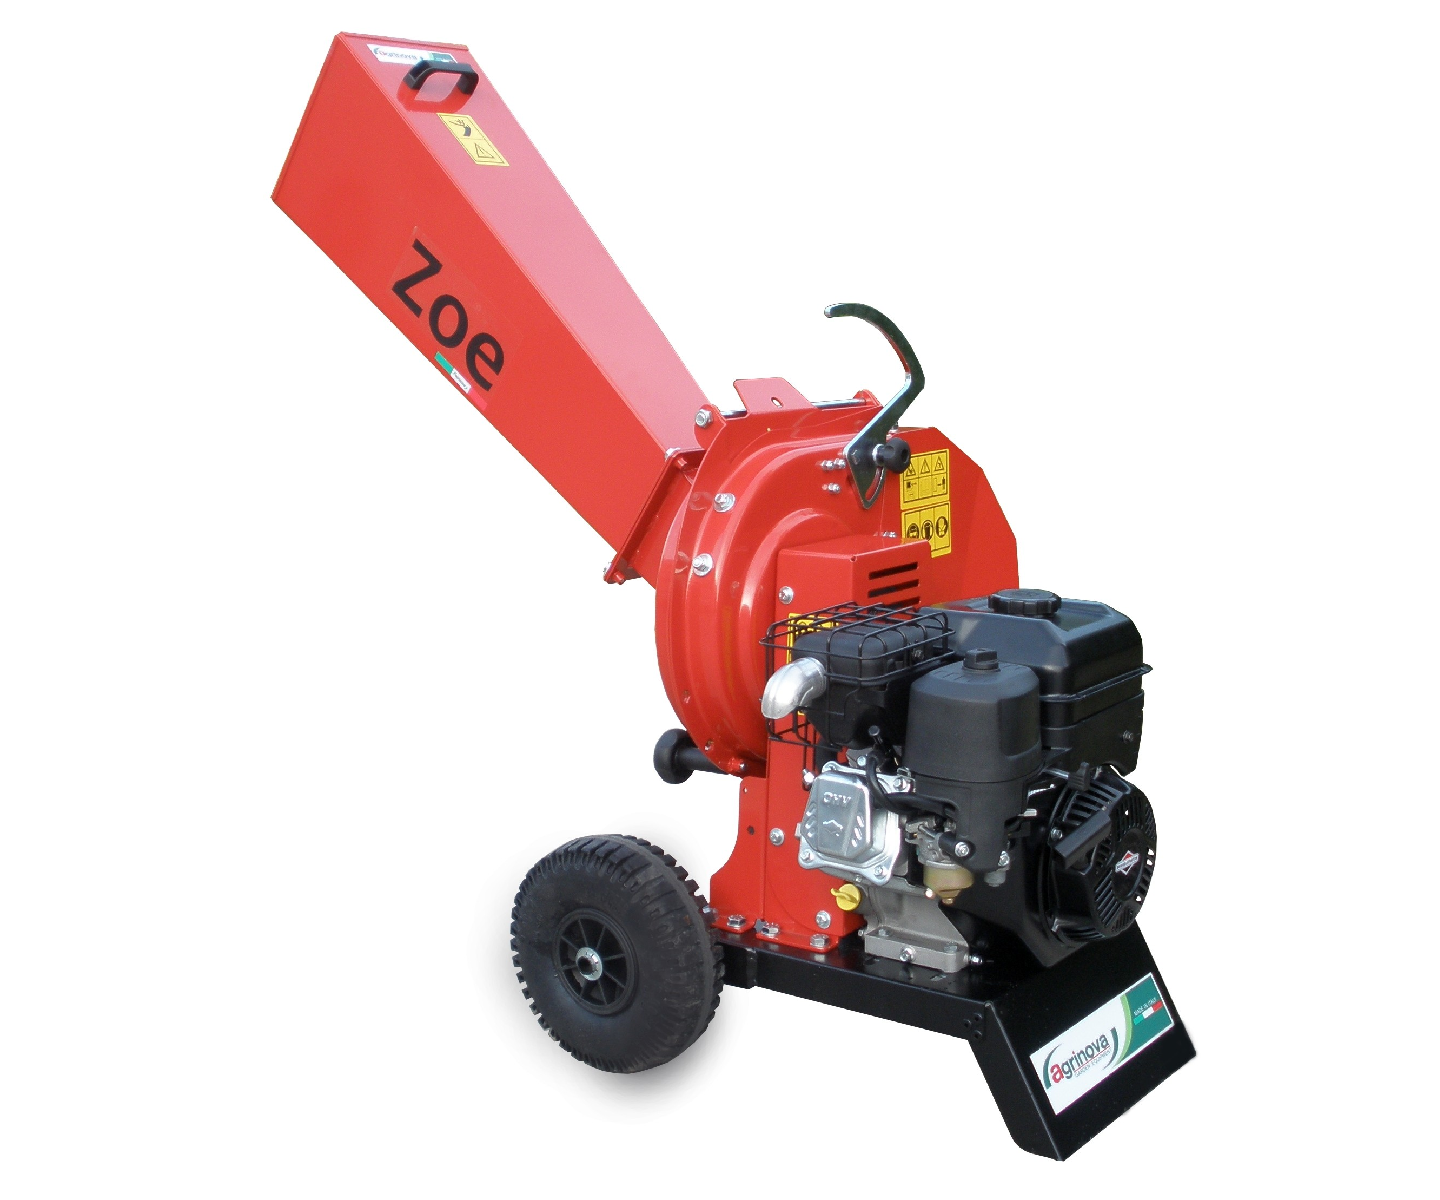 Apache Zoe 50 petrol chipper (up to 50mm diameter)